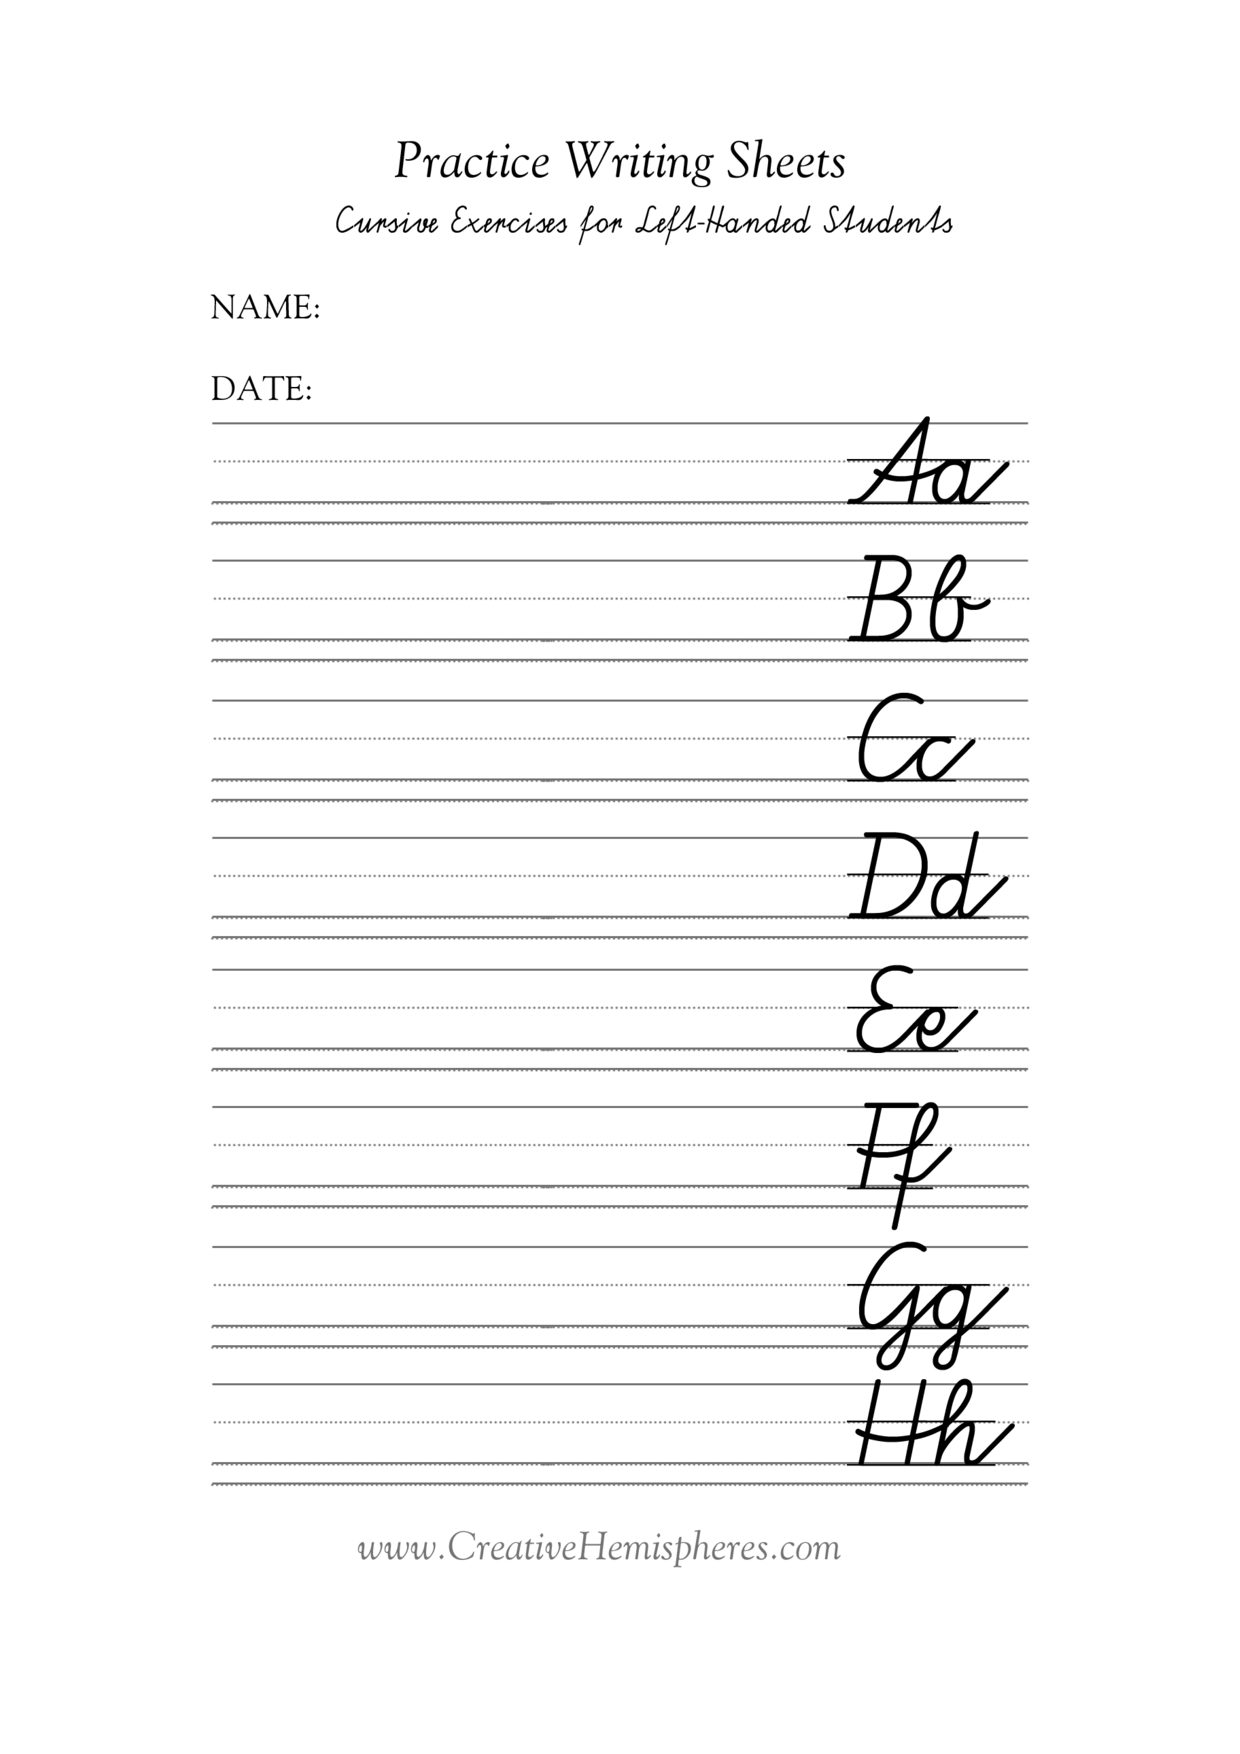 Worksheet Cursive Writing Practice Worksheets cursive writing worksheets abitlikethis joined alphabet letter sb10166 other printable images gallery category page 196 printablee com